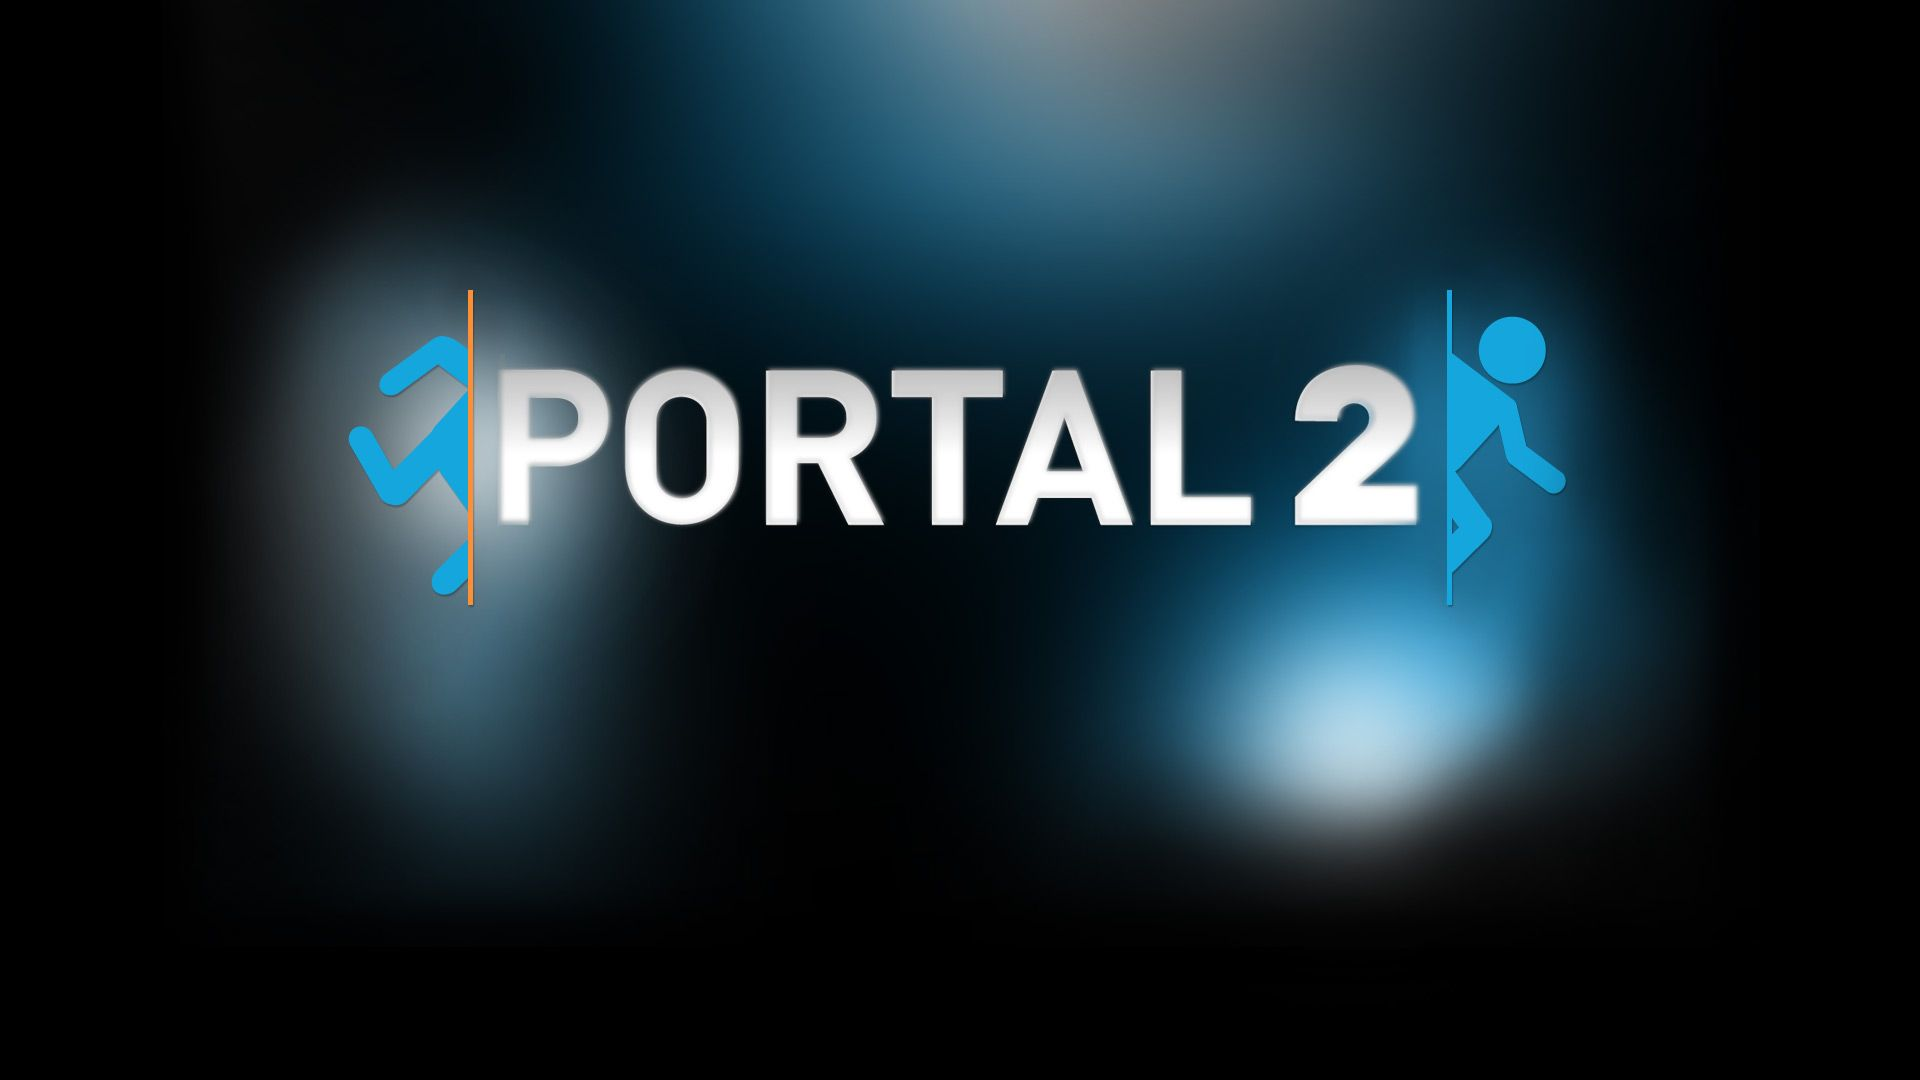 Portal 2 Wallpaper Steam 1920x1080